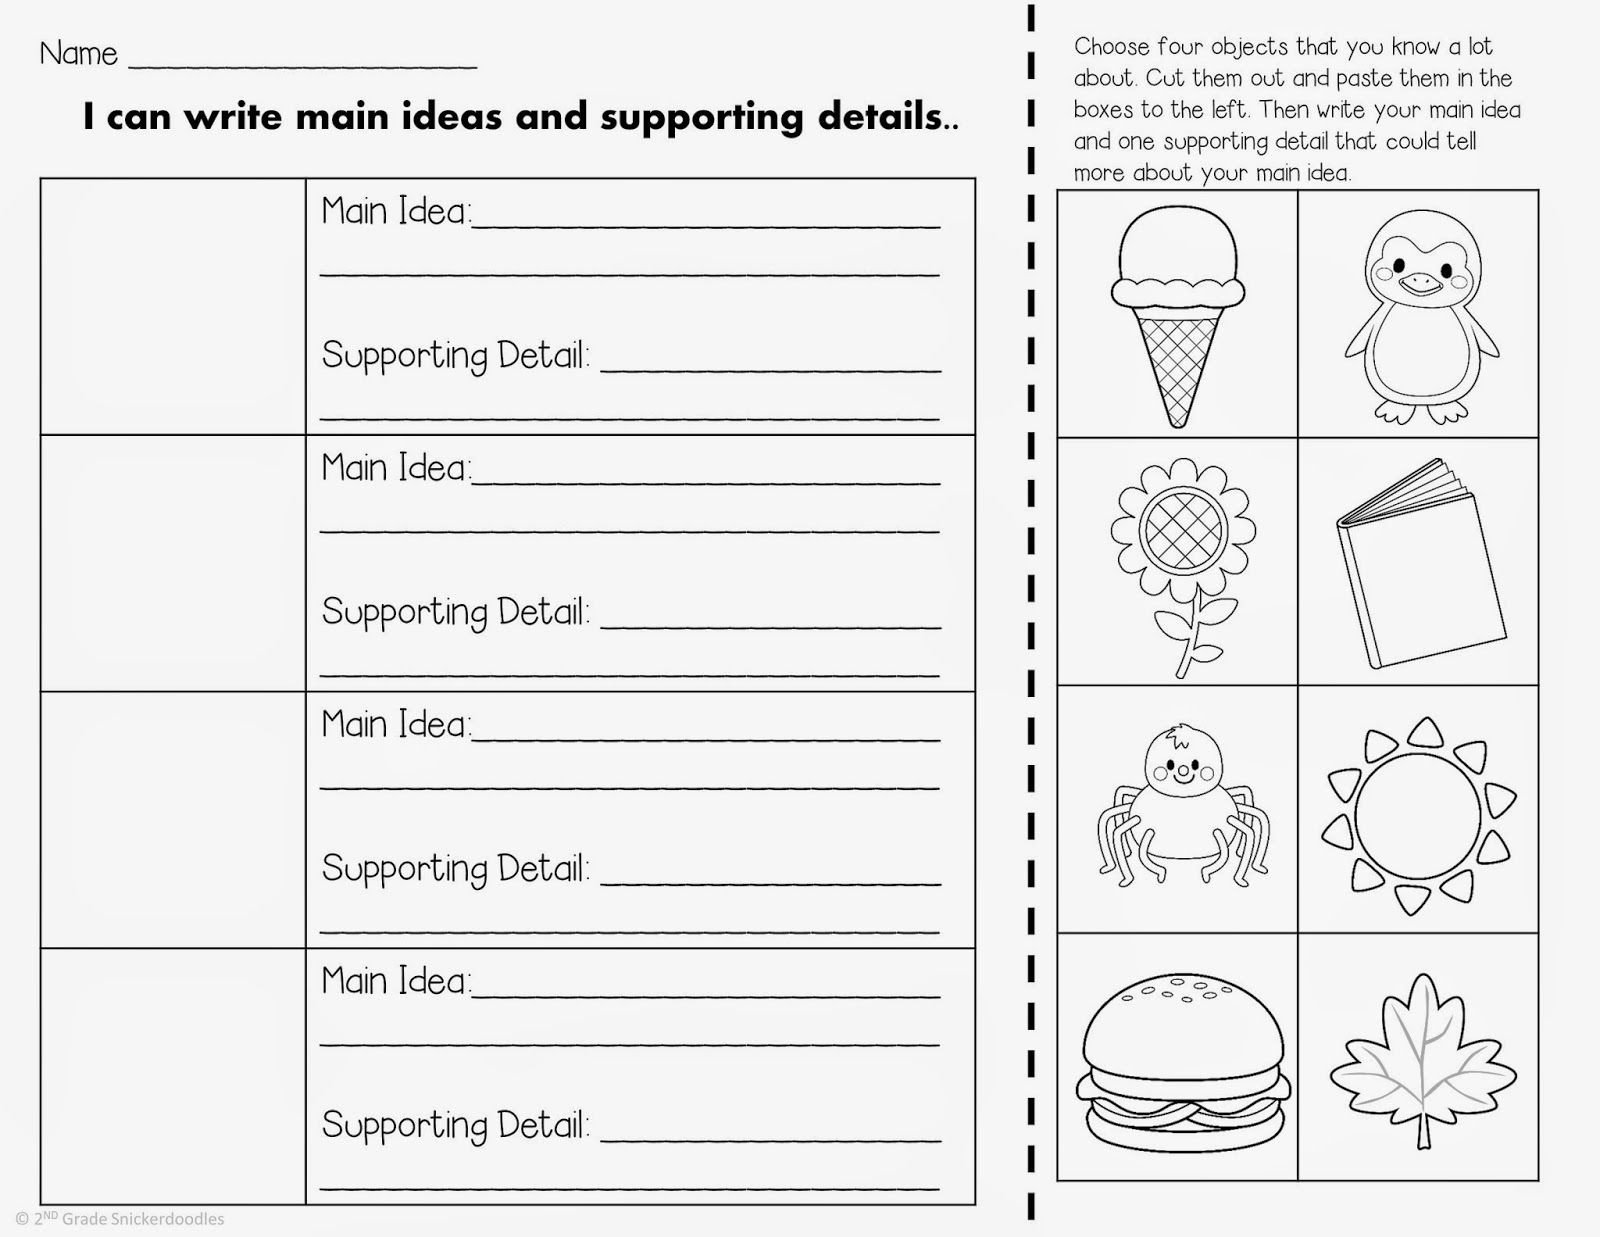 Main Idea Kindergarten Worksheets 2nd Grade Snickerdoodles Main Idea and Supporting Details